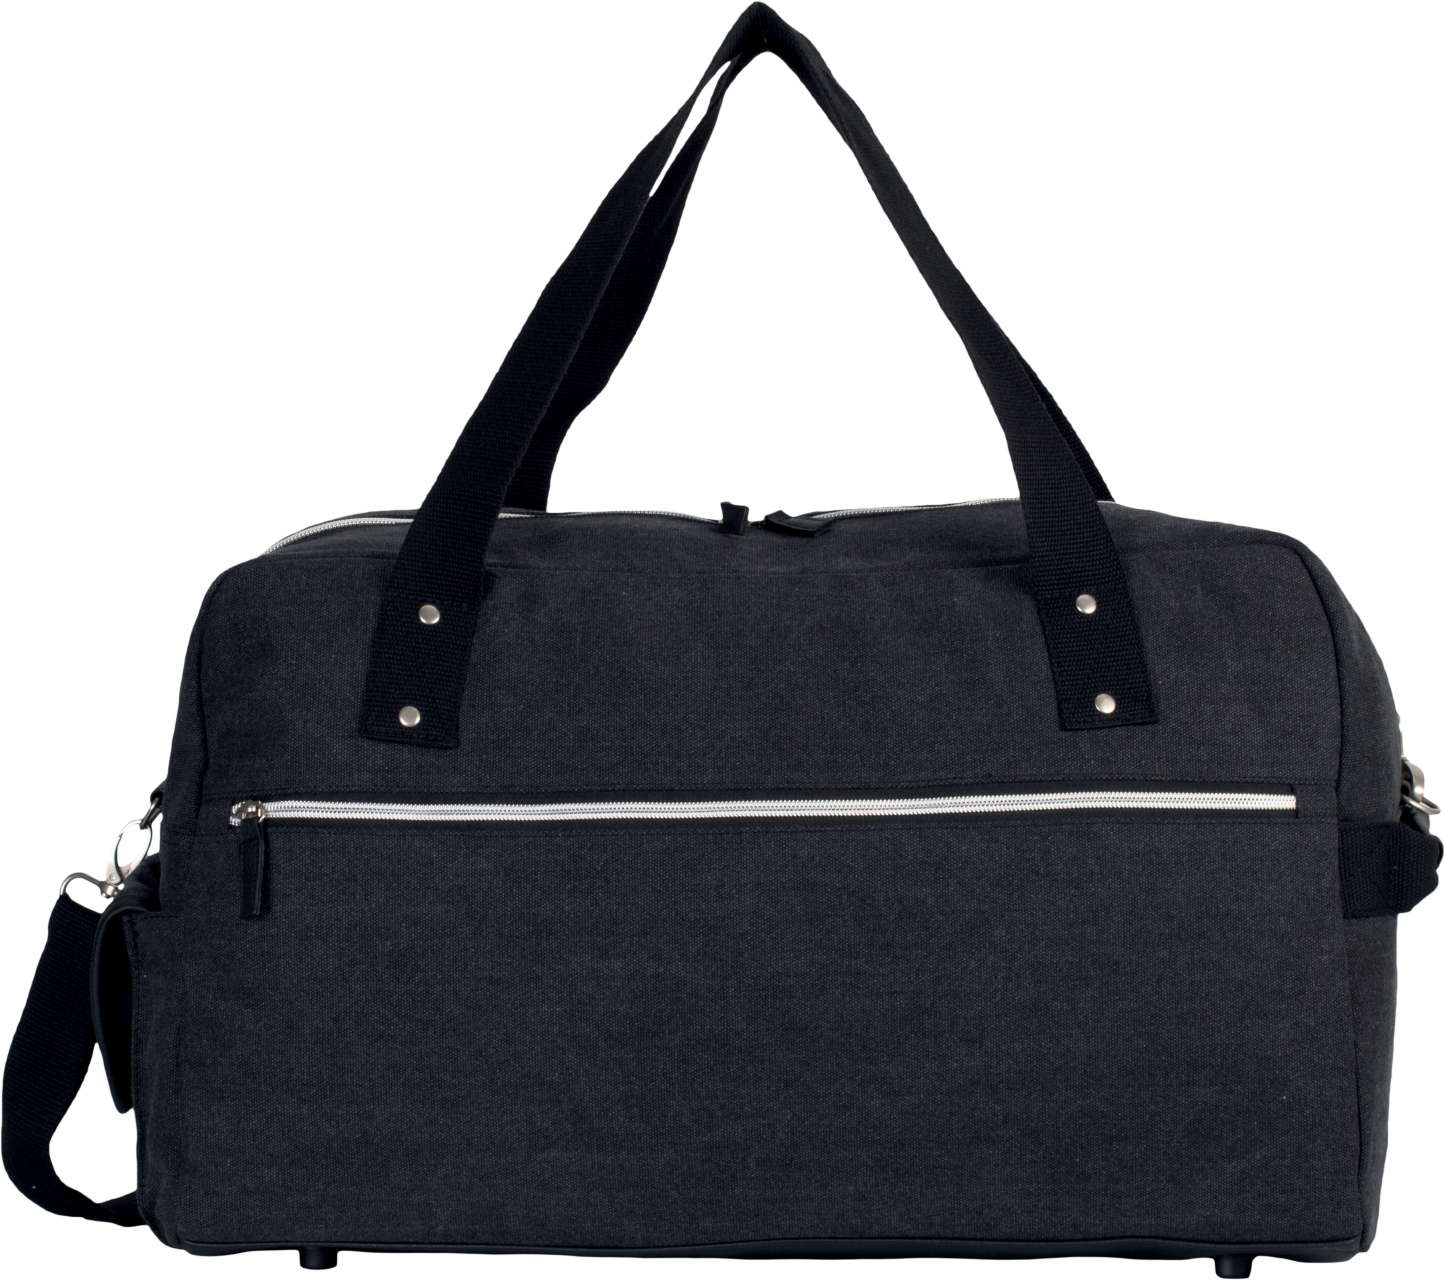 TRAVEL BAG IN COTTON CANVAS